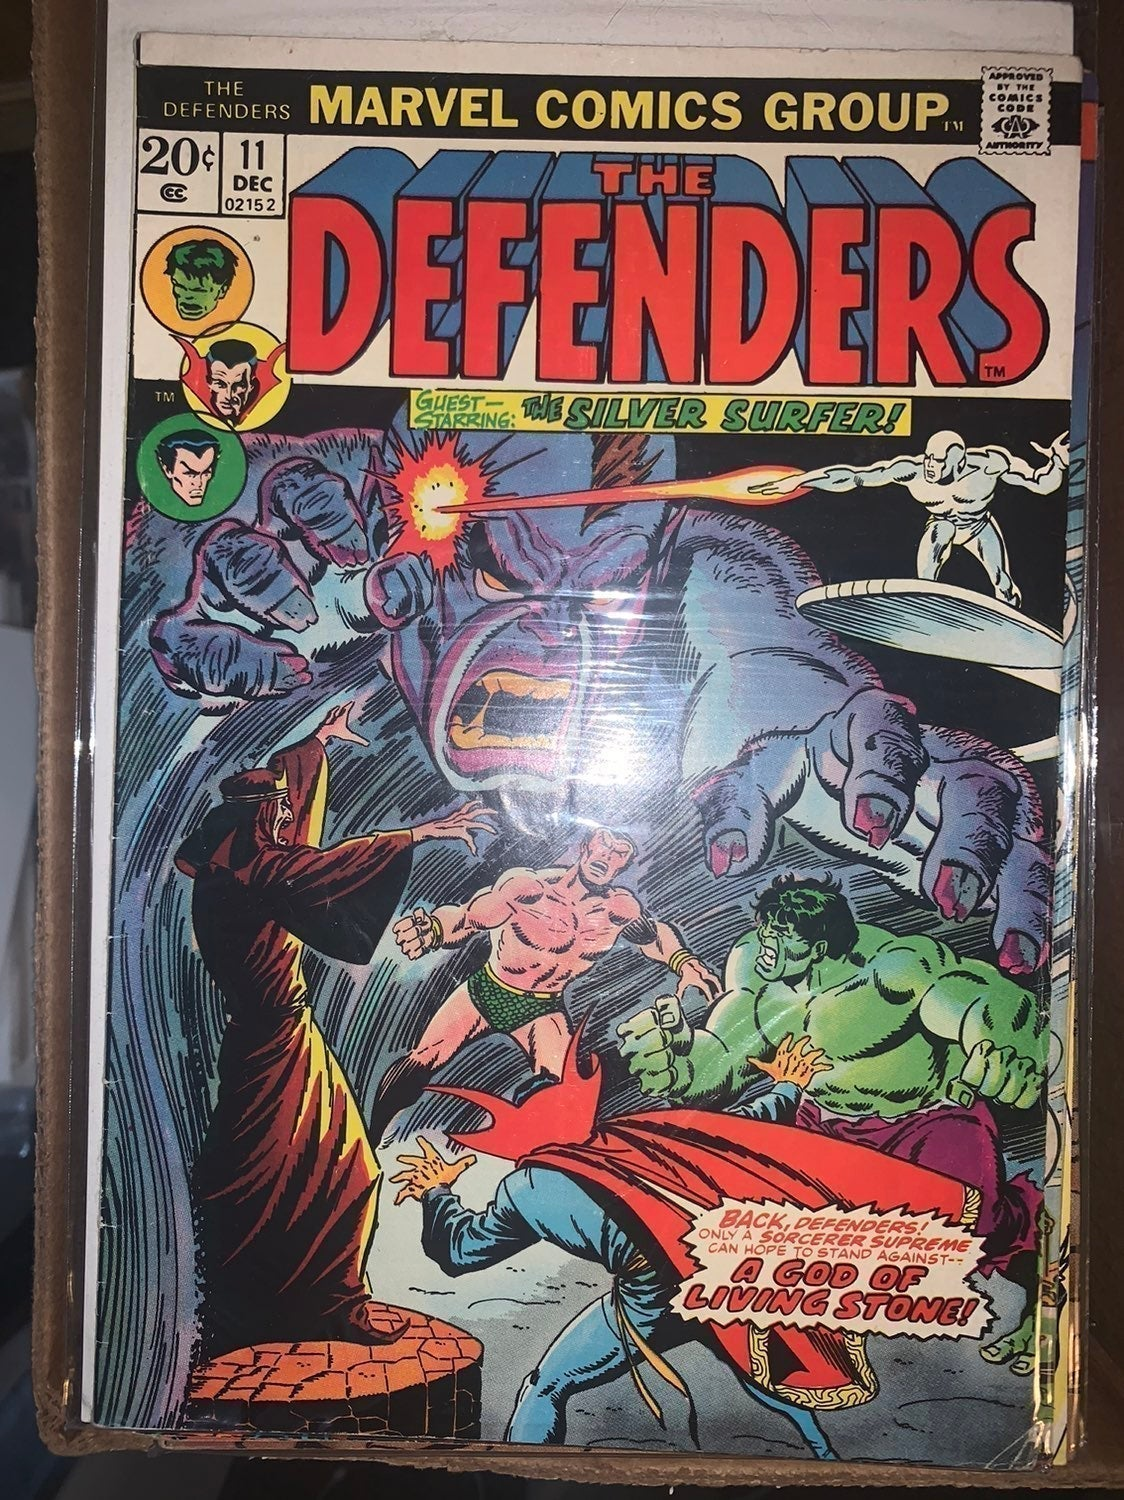 The Defenders #11, With Avengers